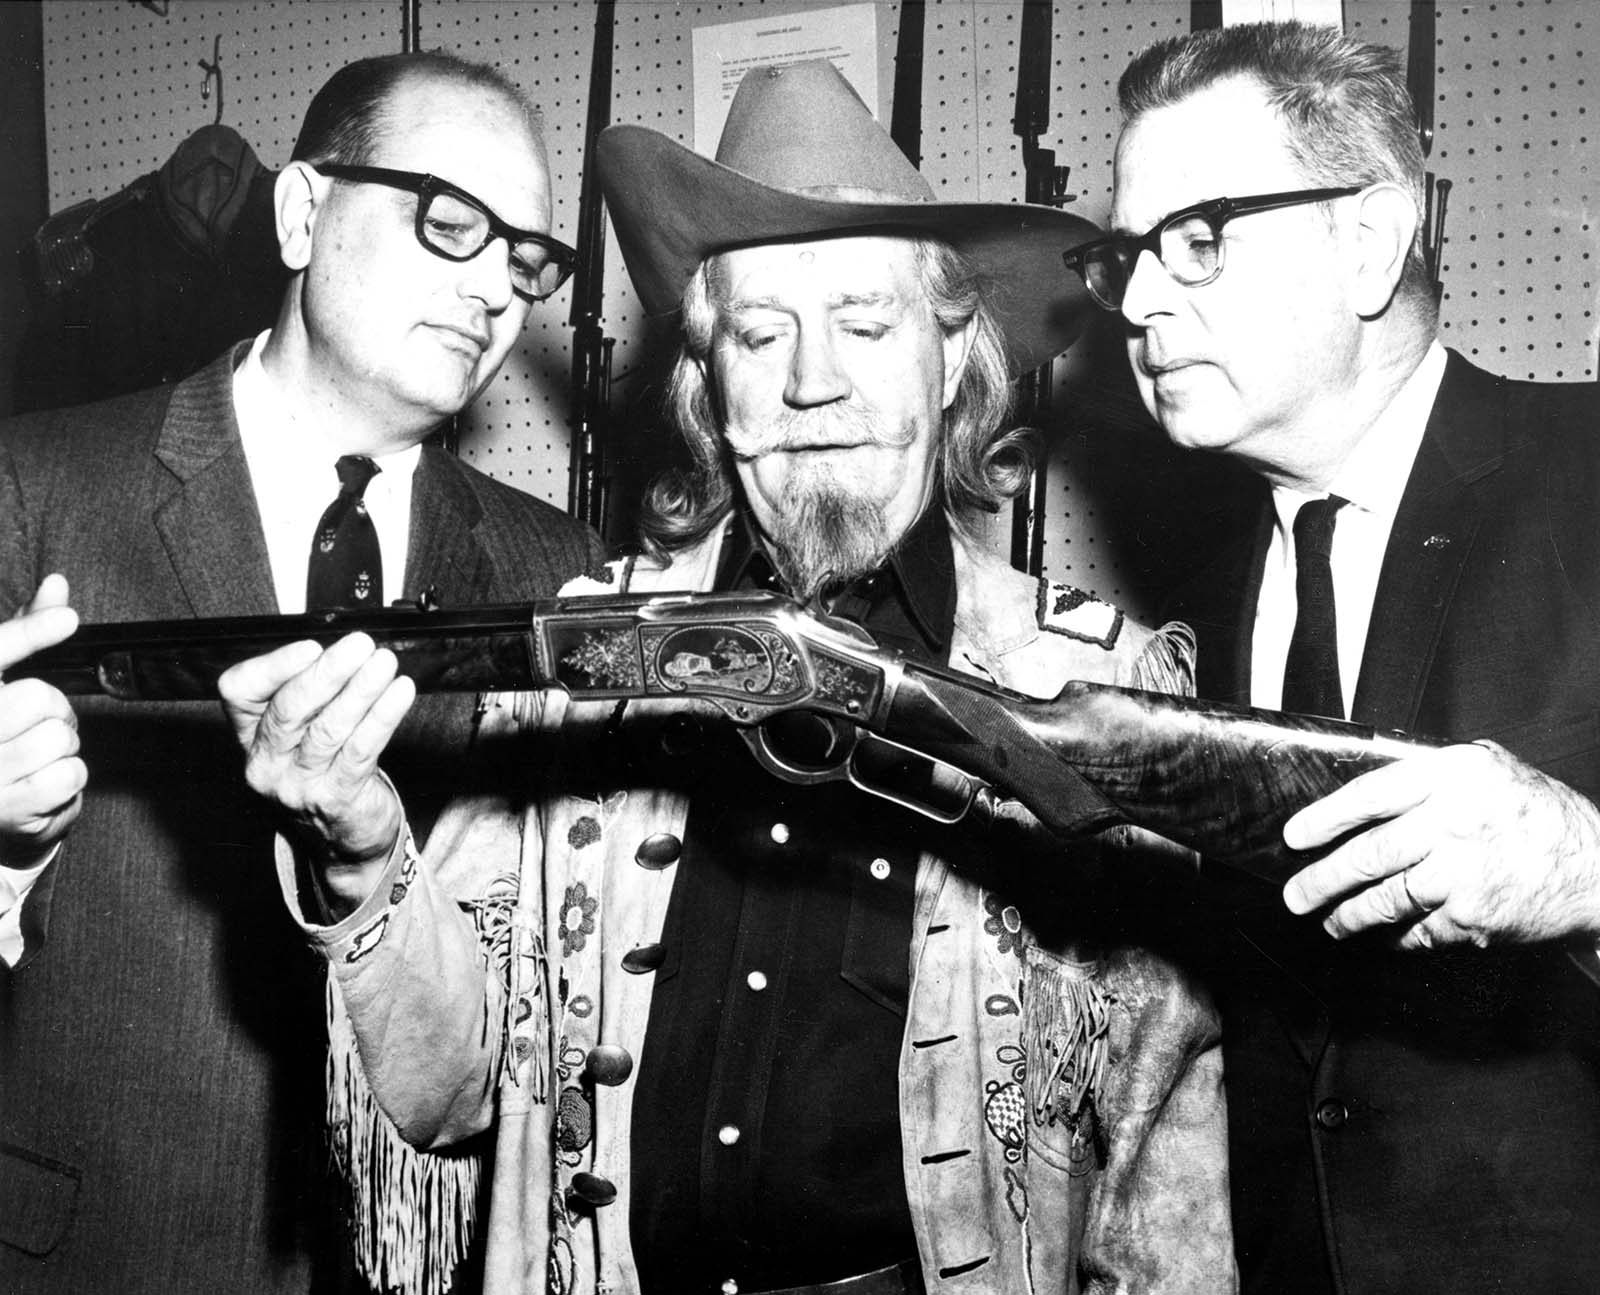 """Buffalo Bill's grandson Fred W. Garlow (center) pays a visit to the Winchester Arms Museum in New Haven, Connecticut, while traveling on behalf of the Center in 1968 to appear on the """"Today Show"""" in New York City. He shares his grandfather's Winchester 1873 rifle with Jack R. Peat, vice president of marketing for the Olin Corporation's Winchester-Western Division (left) and Tom Hall, museum curator. P.20.2618"""